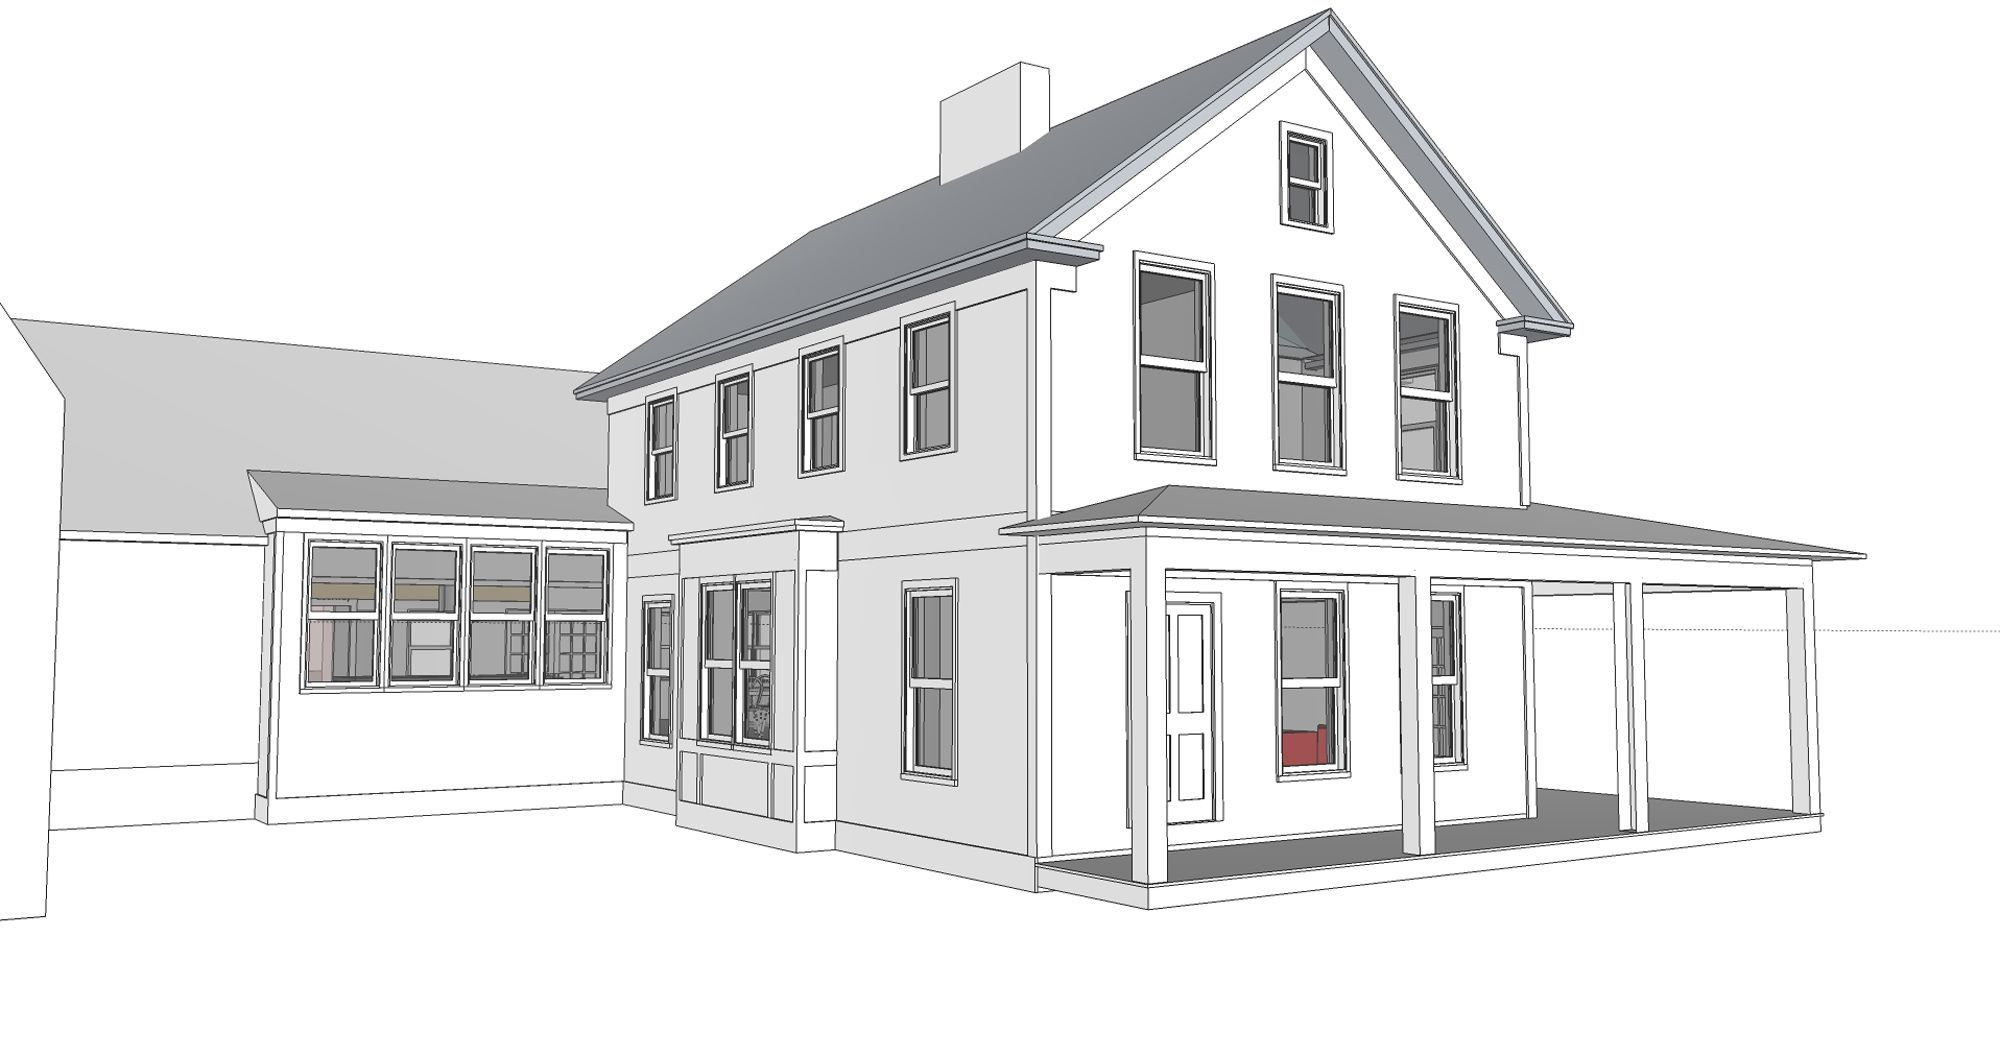 Appealing vermont farmhouse plans gallery plan 3d house for Vermont farmhouse plans